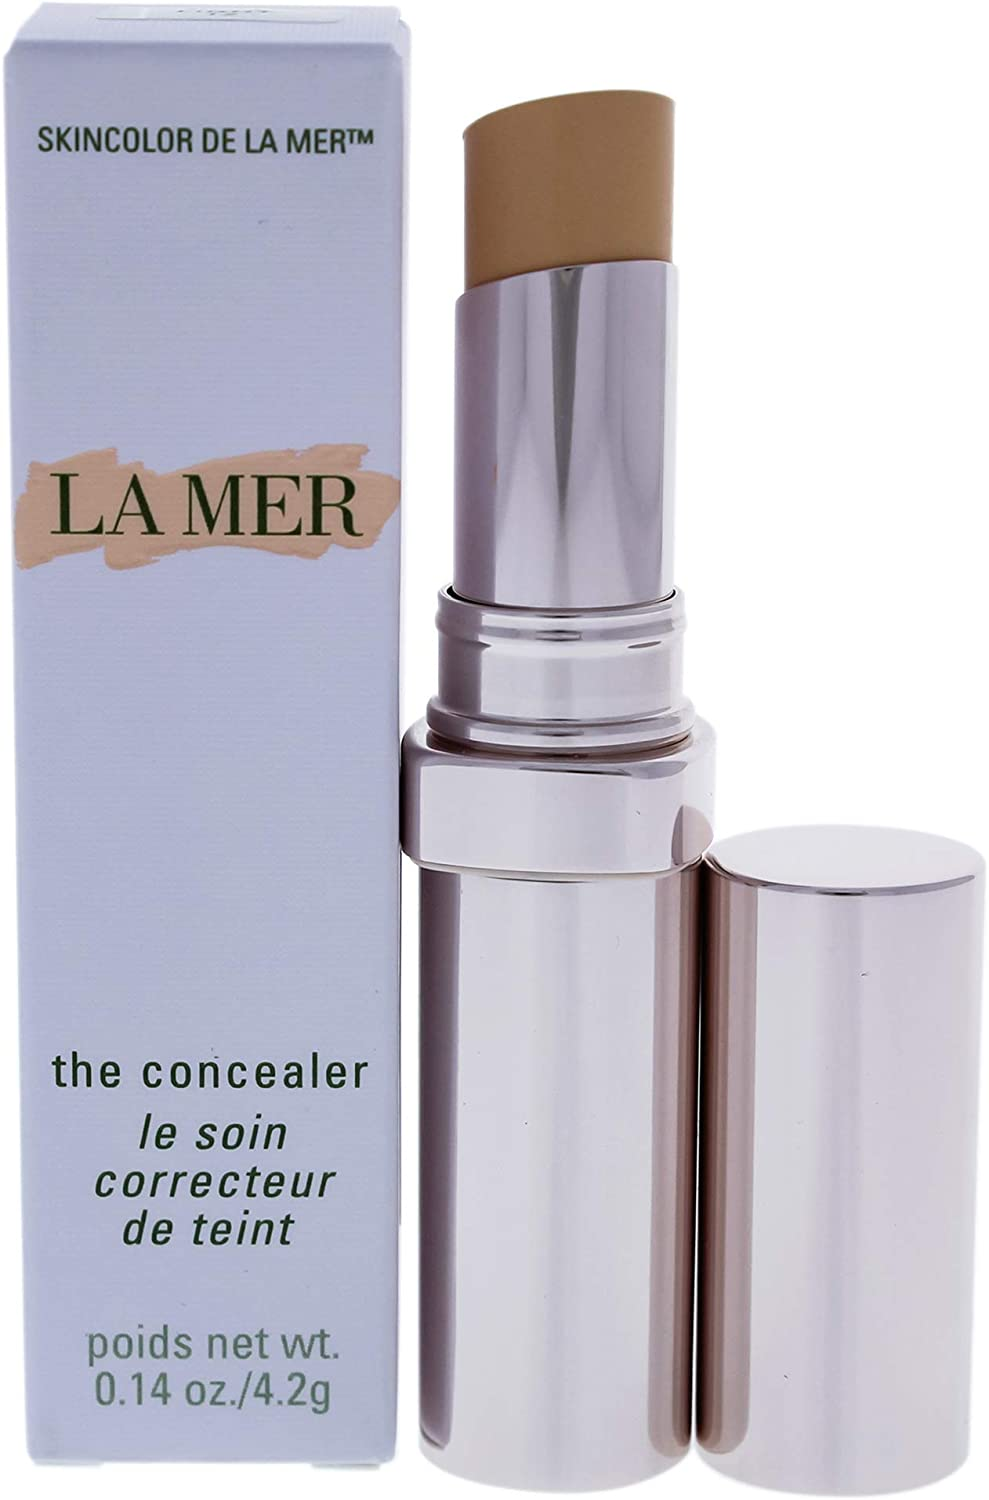 LA MER THE CONCEALER LE SOIN CORRECTEUR DE TEINT VERY LIGHT 02